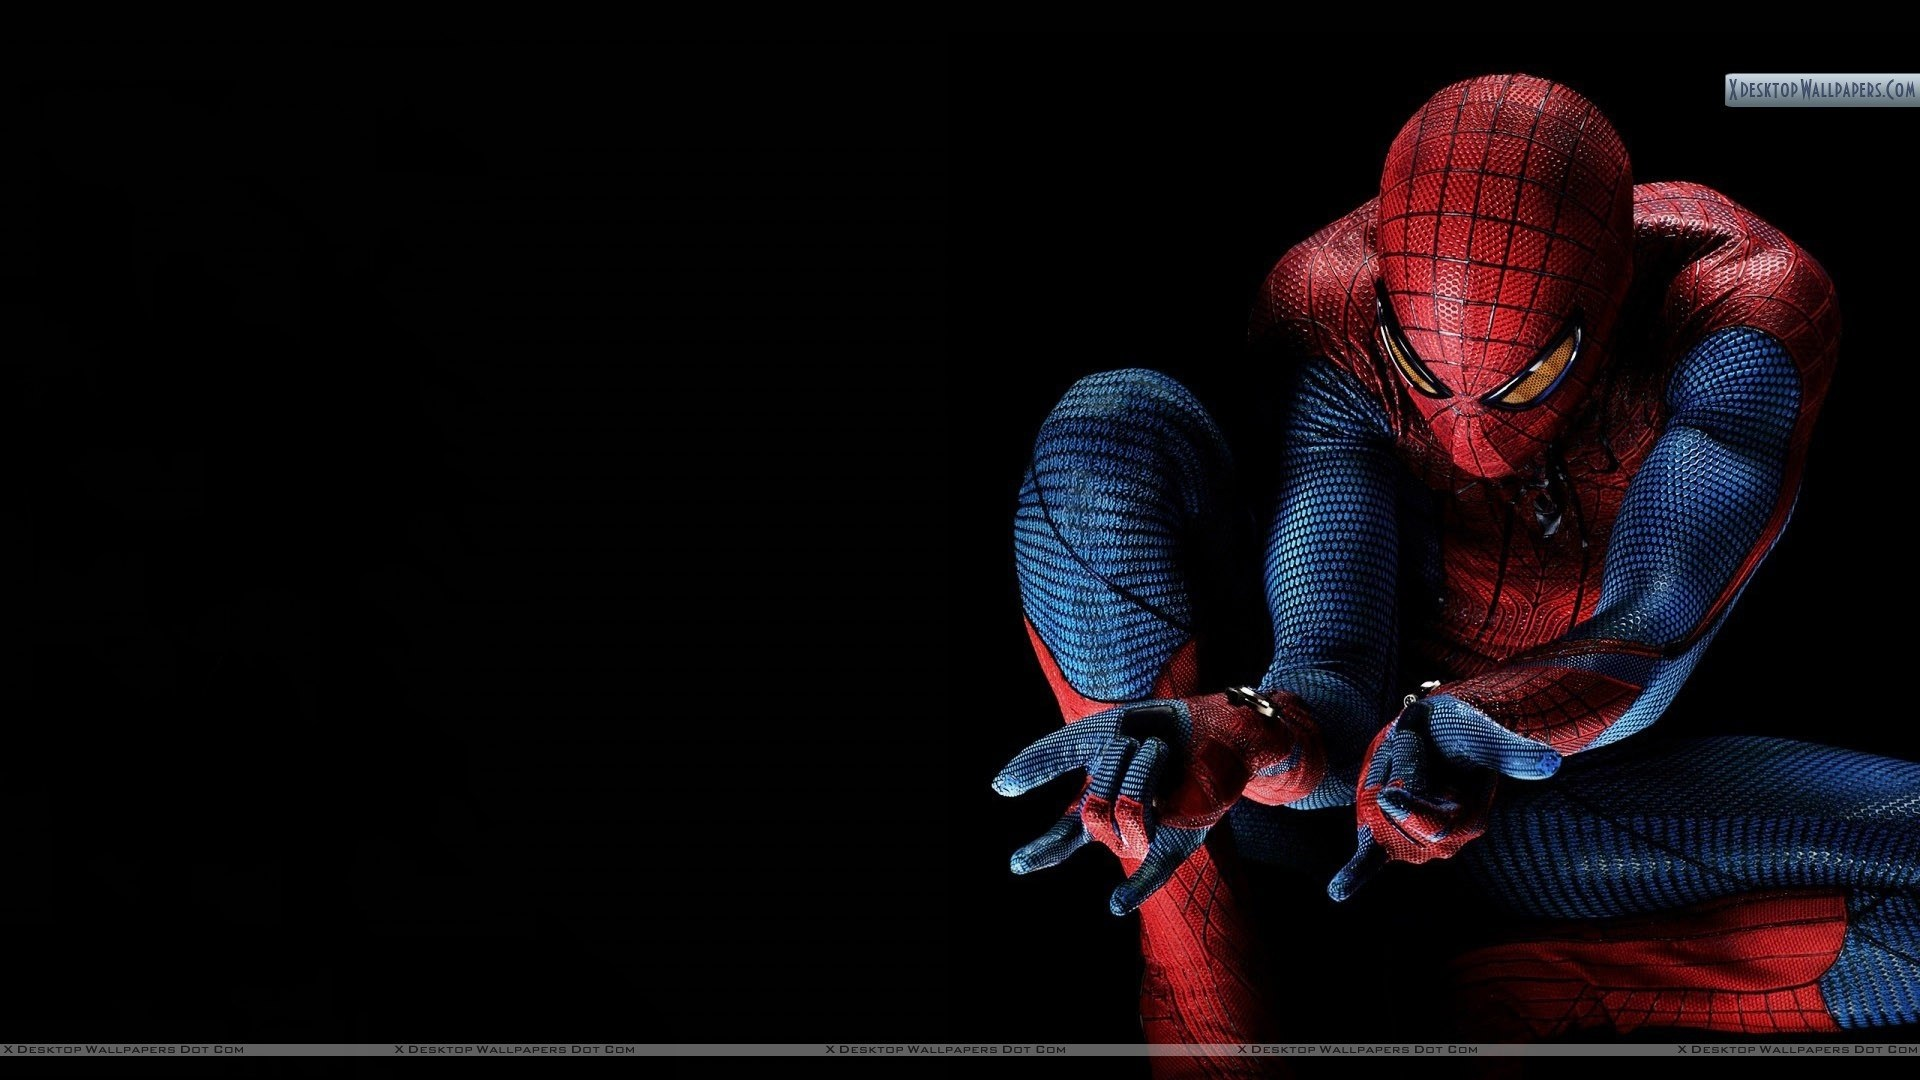 Spiderman Desktop Wallpaper Hd